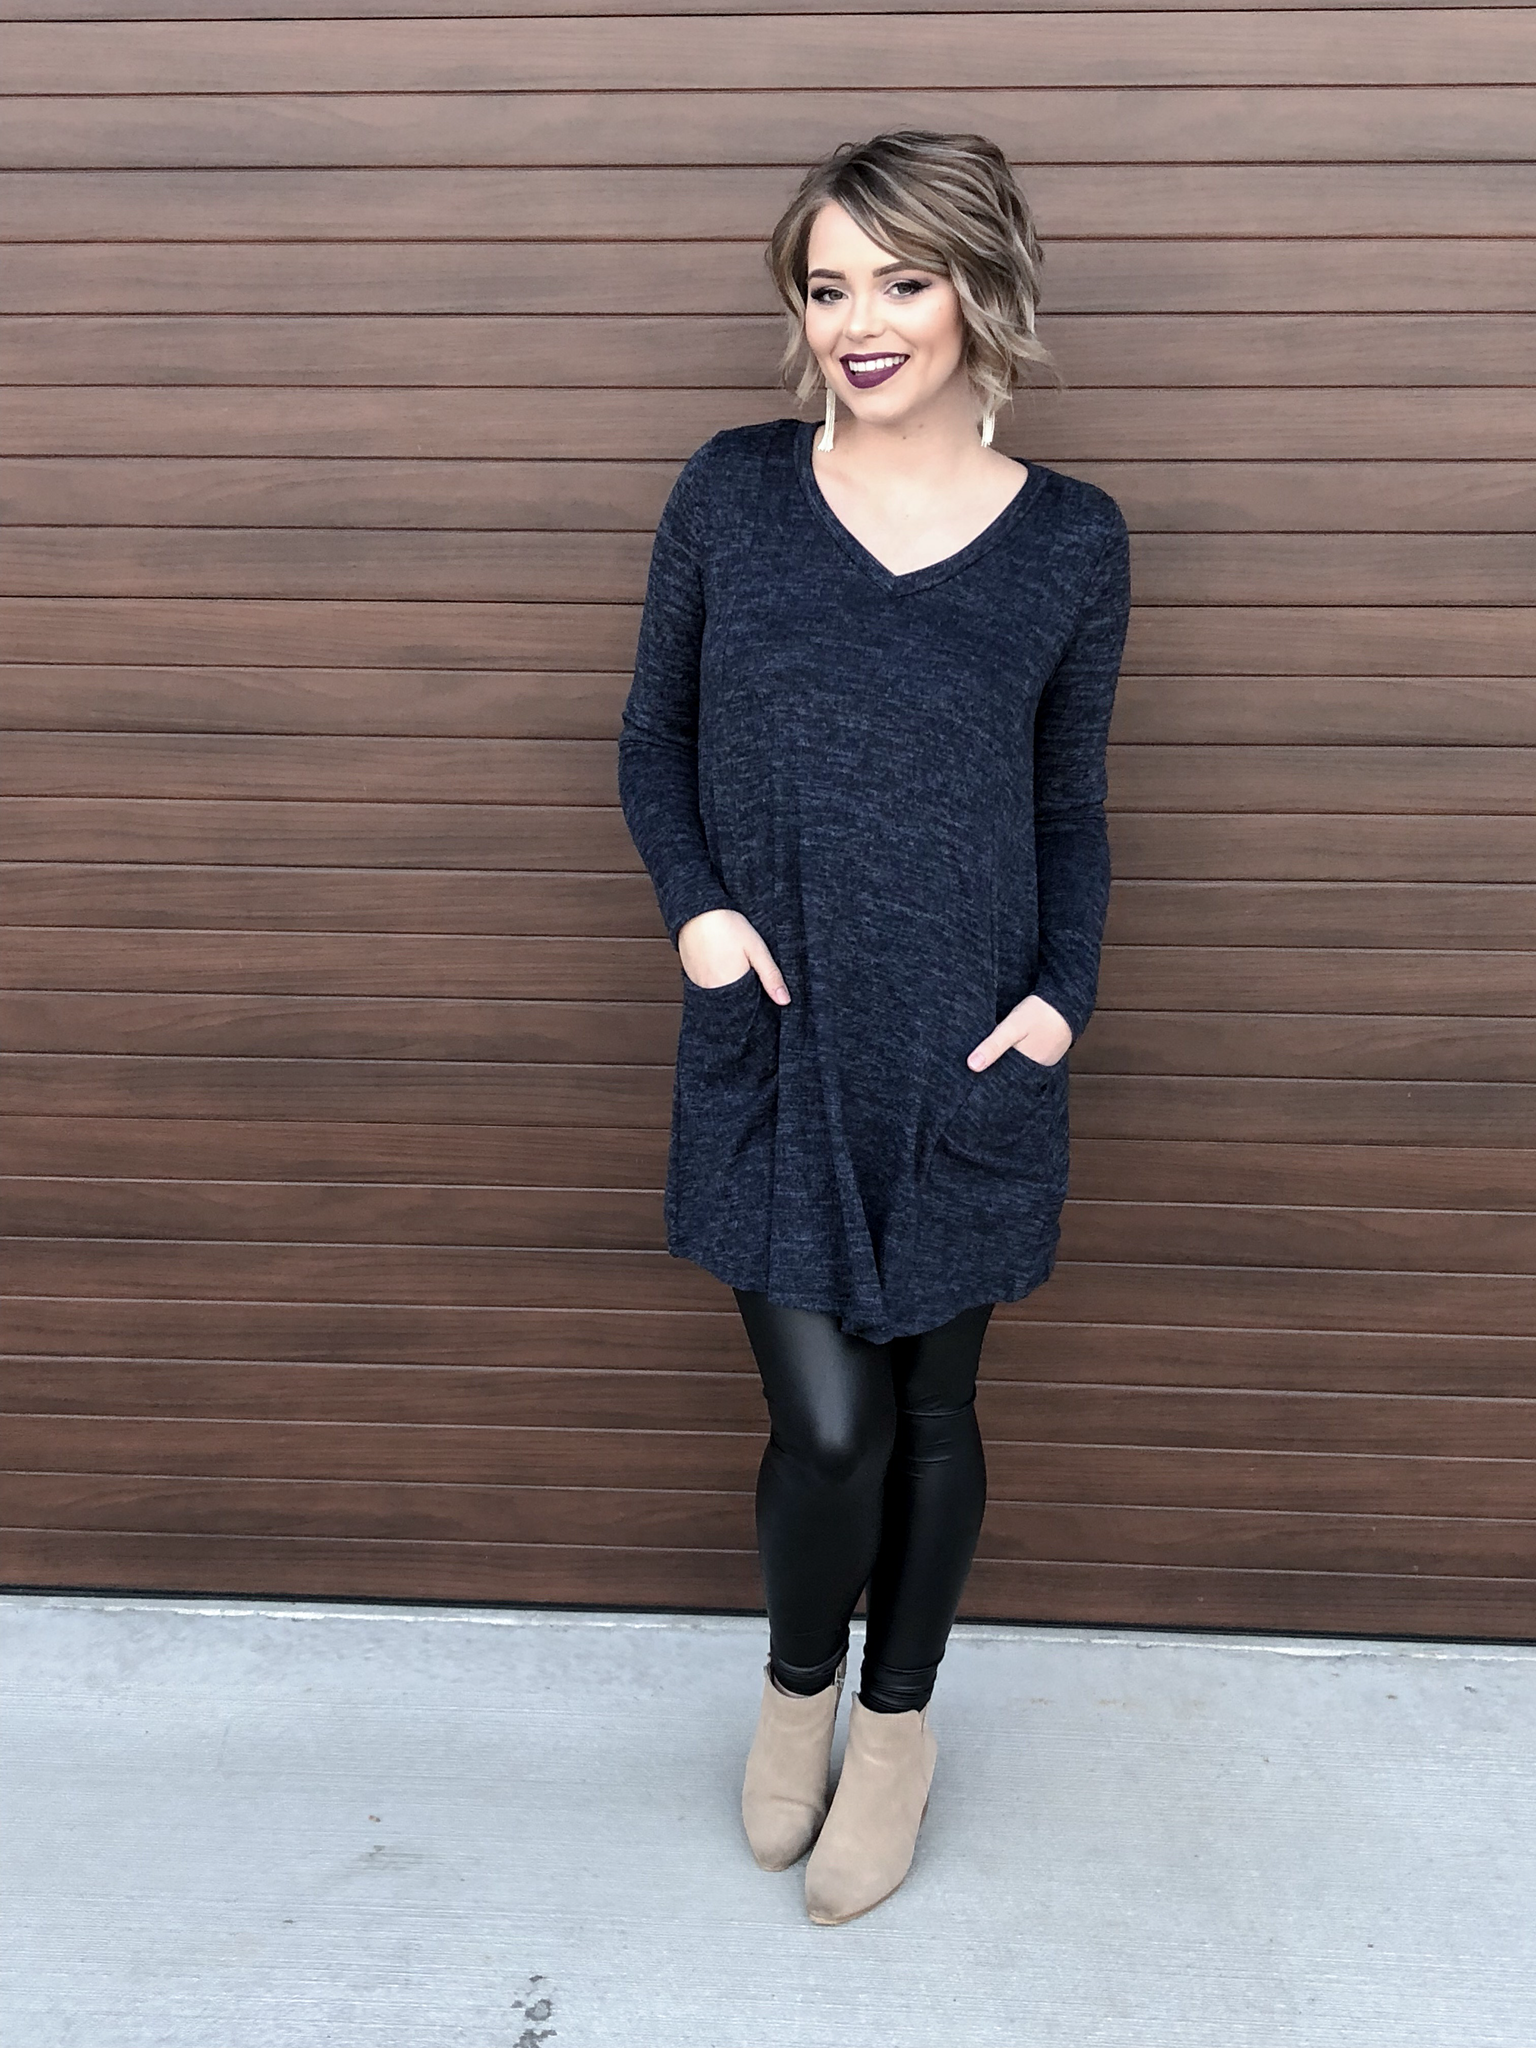 The Oyen Sweater Dress